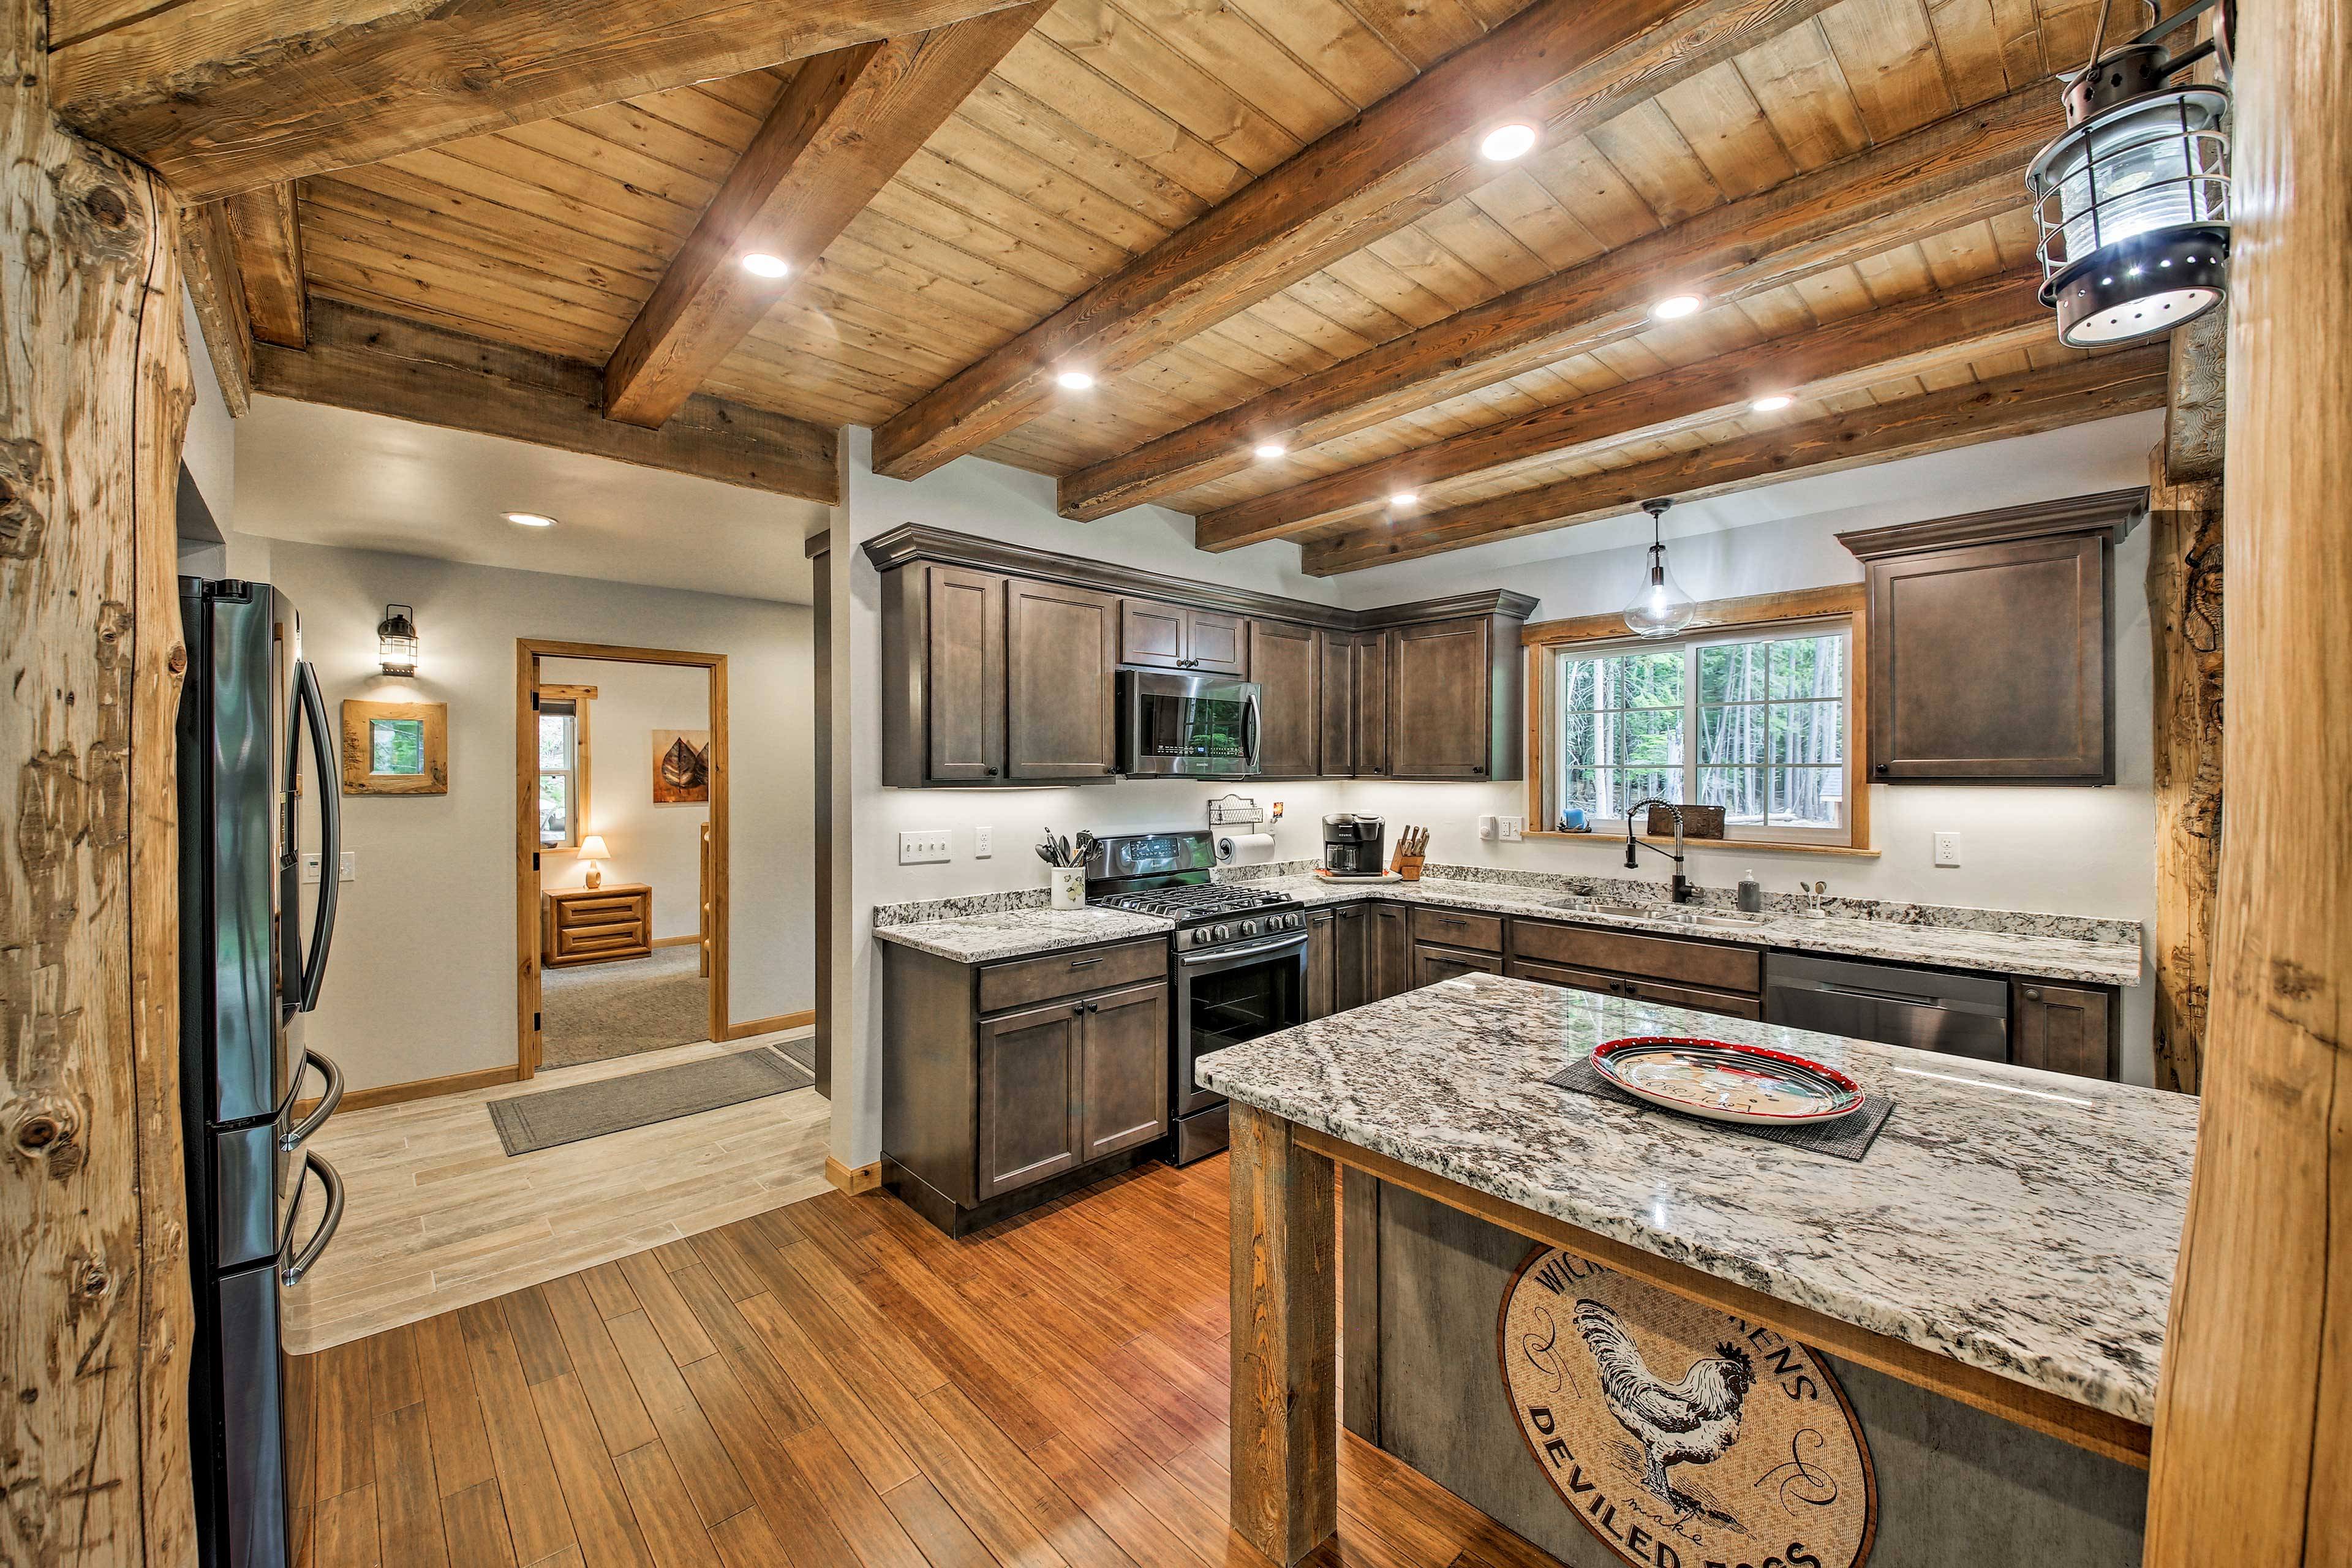 Upgraded stainless steel appliances also elevate the space.